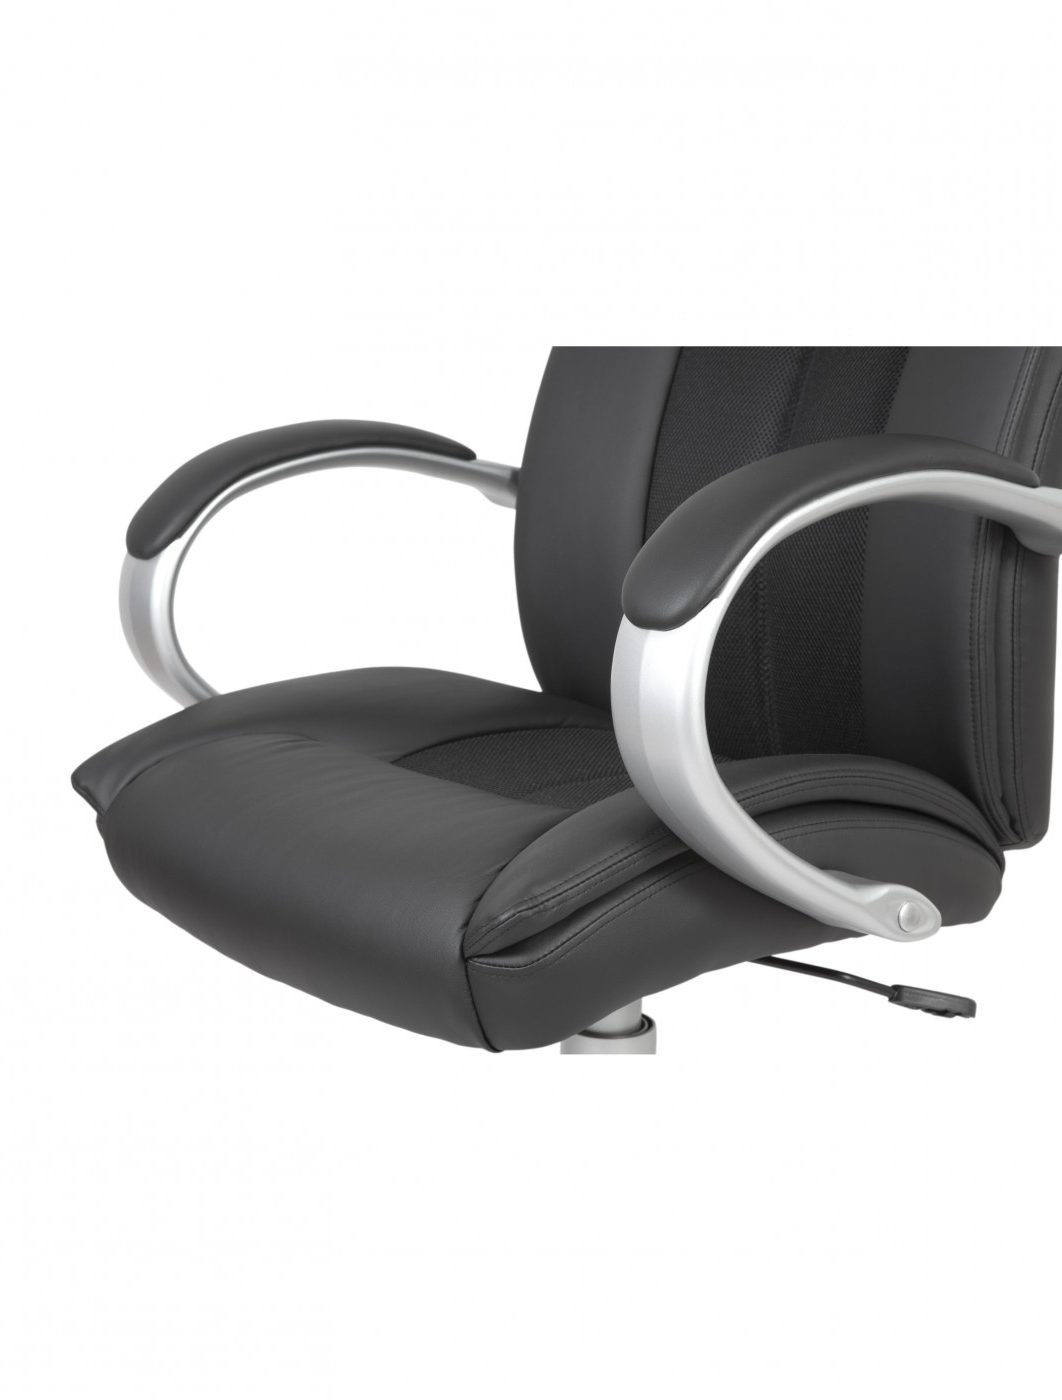 Executive Office Chairs With Shiatsu Massager In Preferred Shiatsu Massage Chair (View 12 of 20)